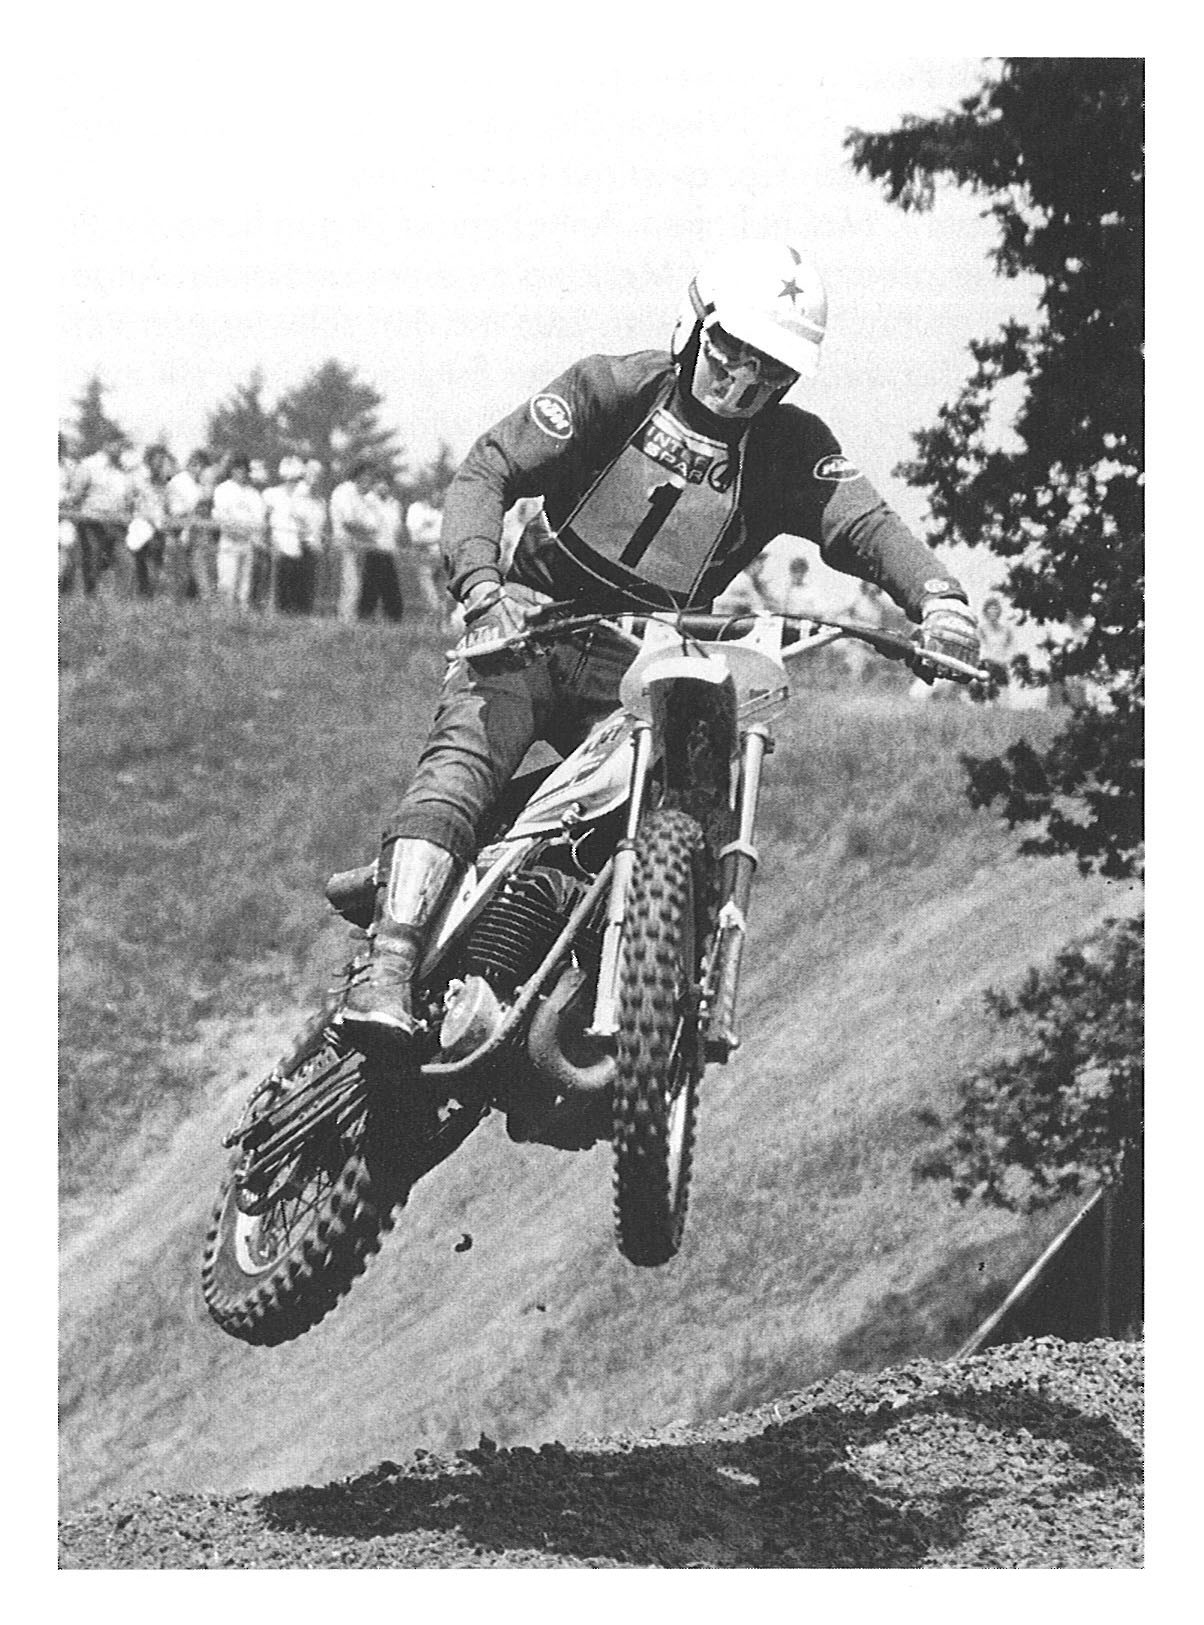 Inthisyear1978 Gennady Moiseev Rides Ktm To Become World Champion For The Third Time Ktm Blog